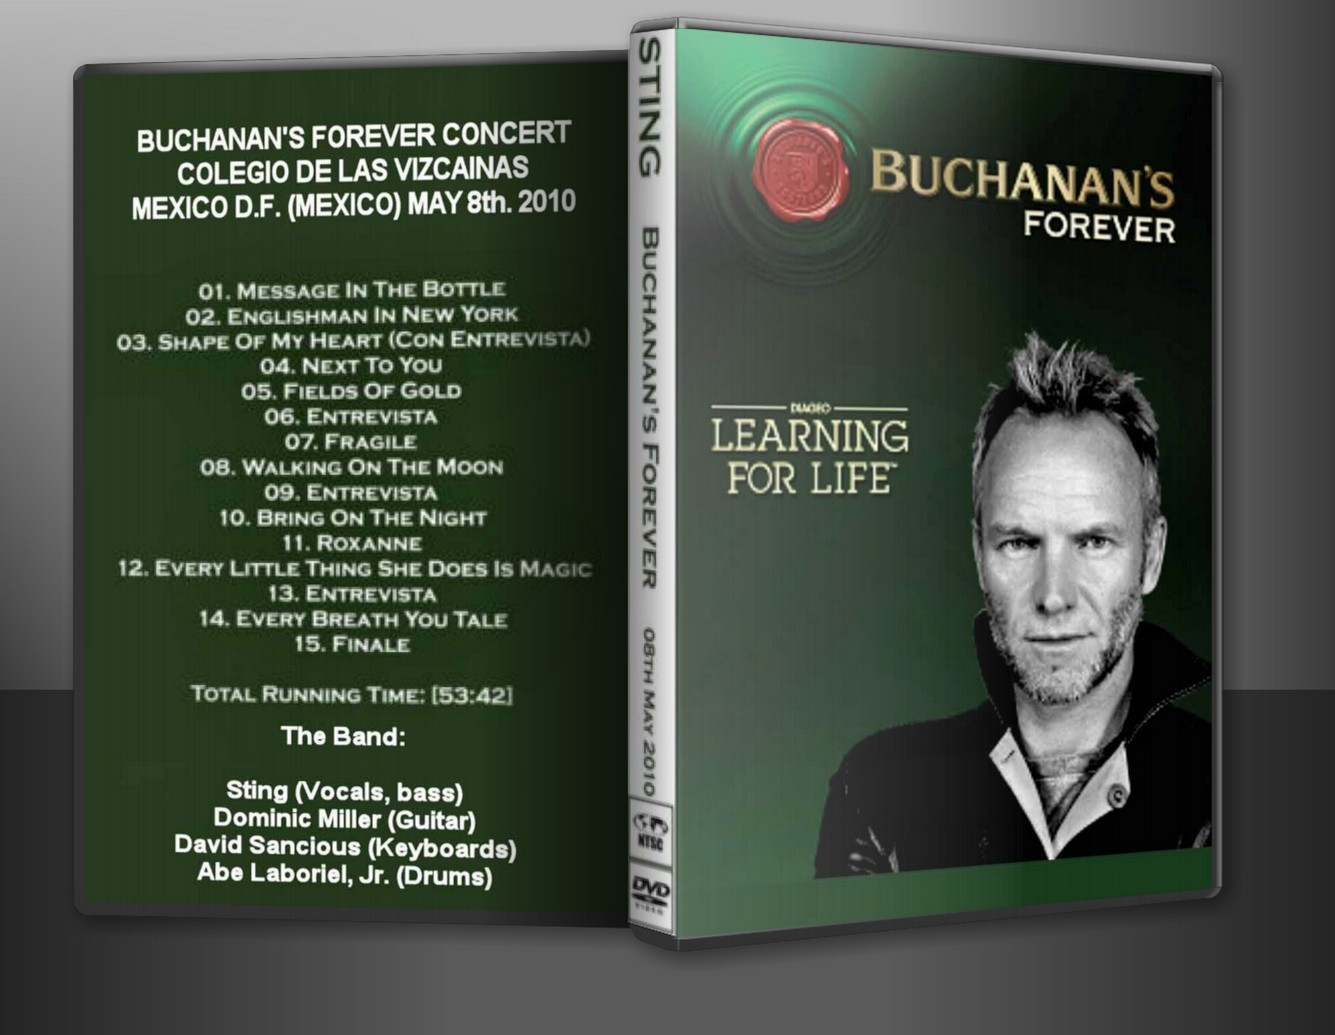 http://1.bp.blogspot.com/-hWElcHLrTAs/Tq59HcJxrLI/AAAAAAAAEUk/ylIpSQVaNsI/s1600/DVD+Cover+For+Show+-+Sting+-+Live+In+Mexico+City%252C+Mexico+2010.jpg